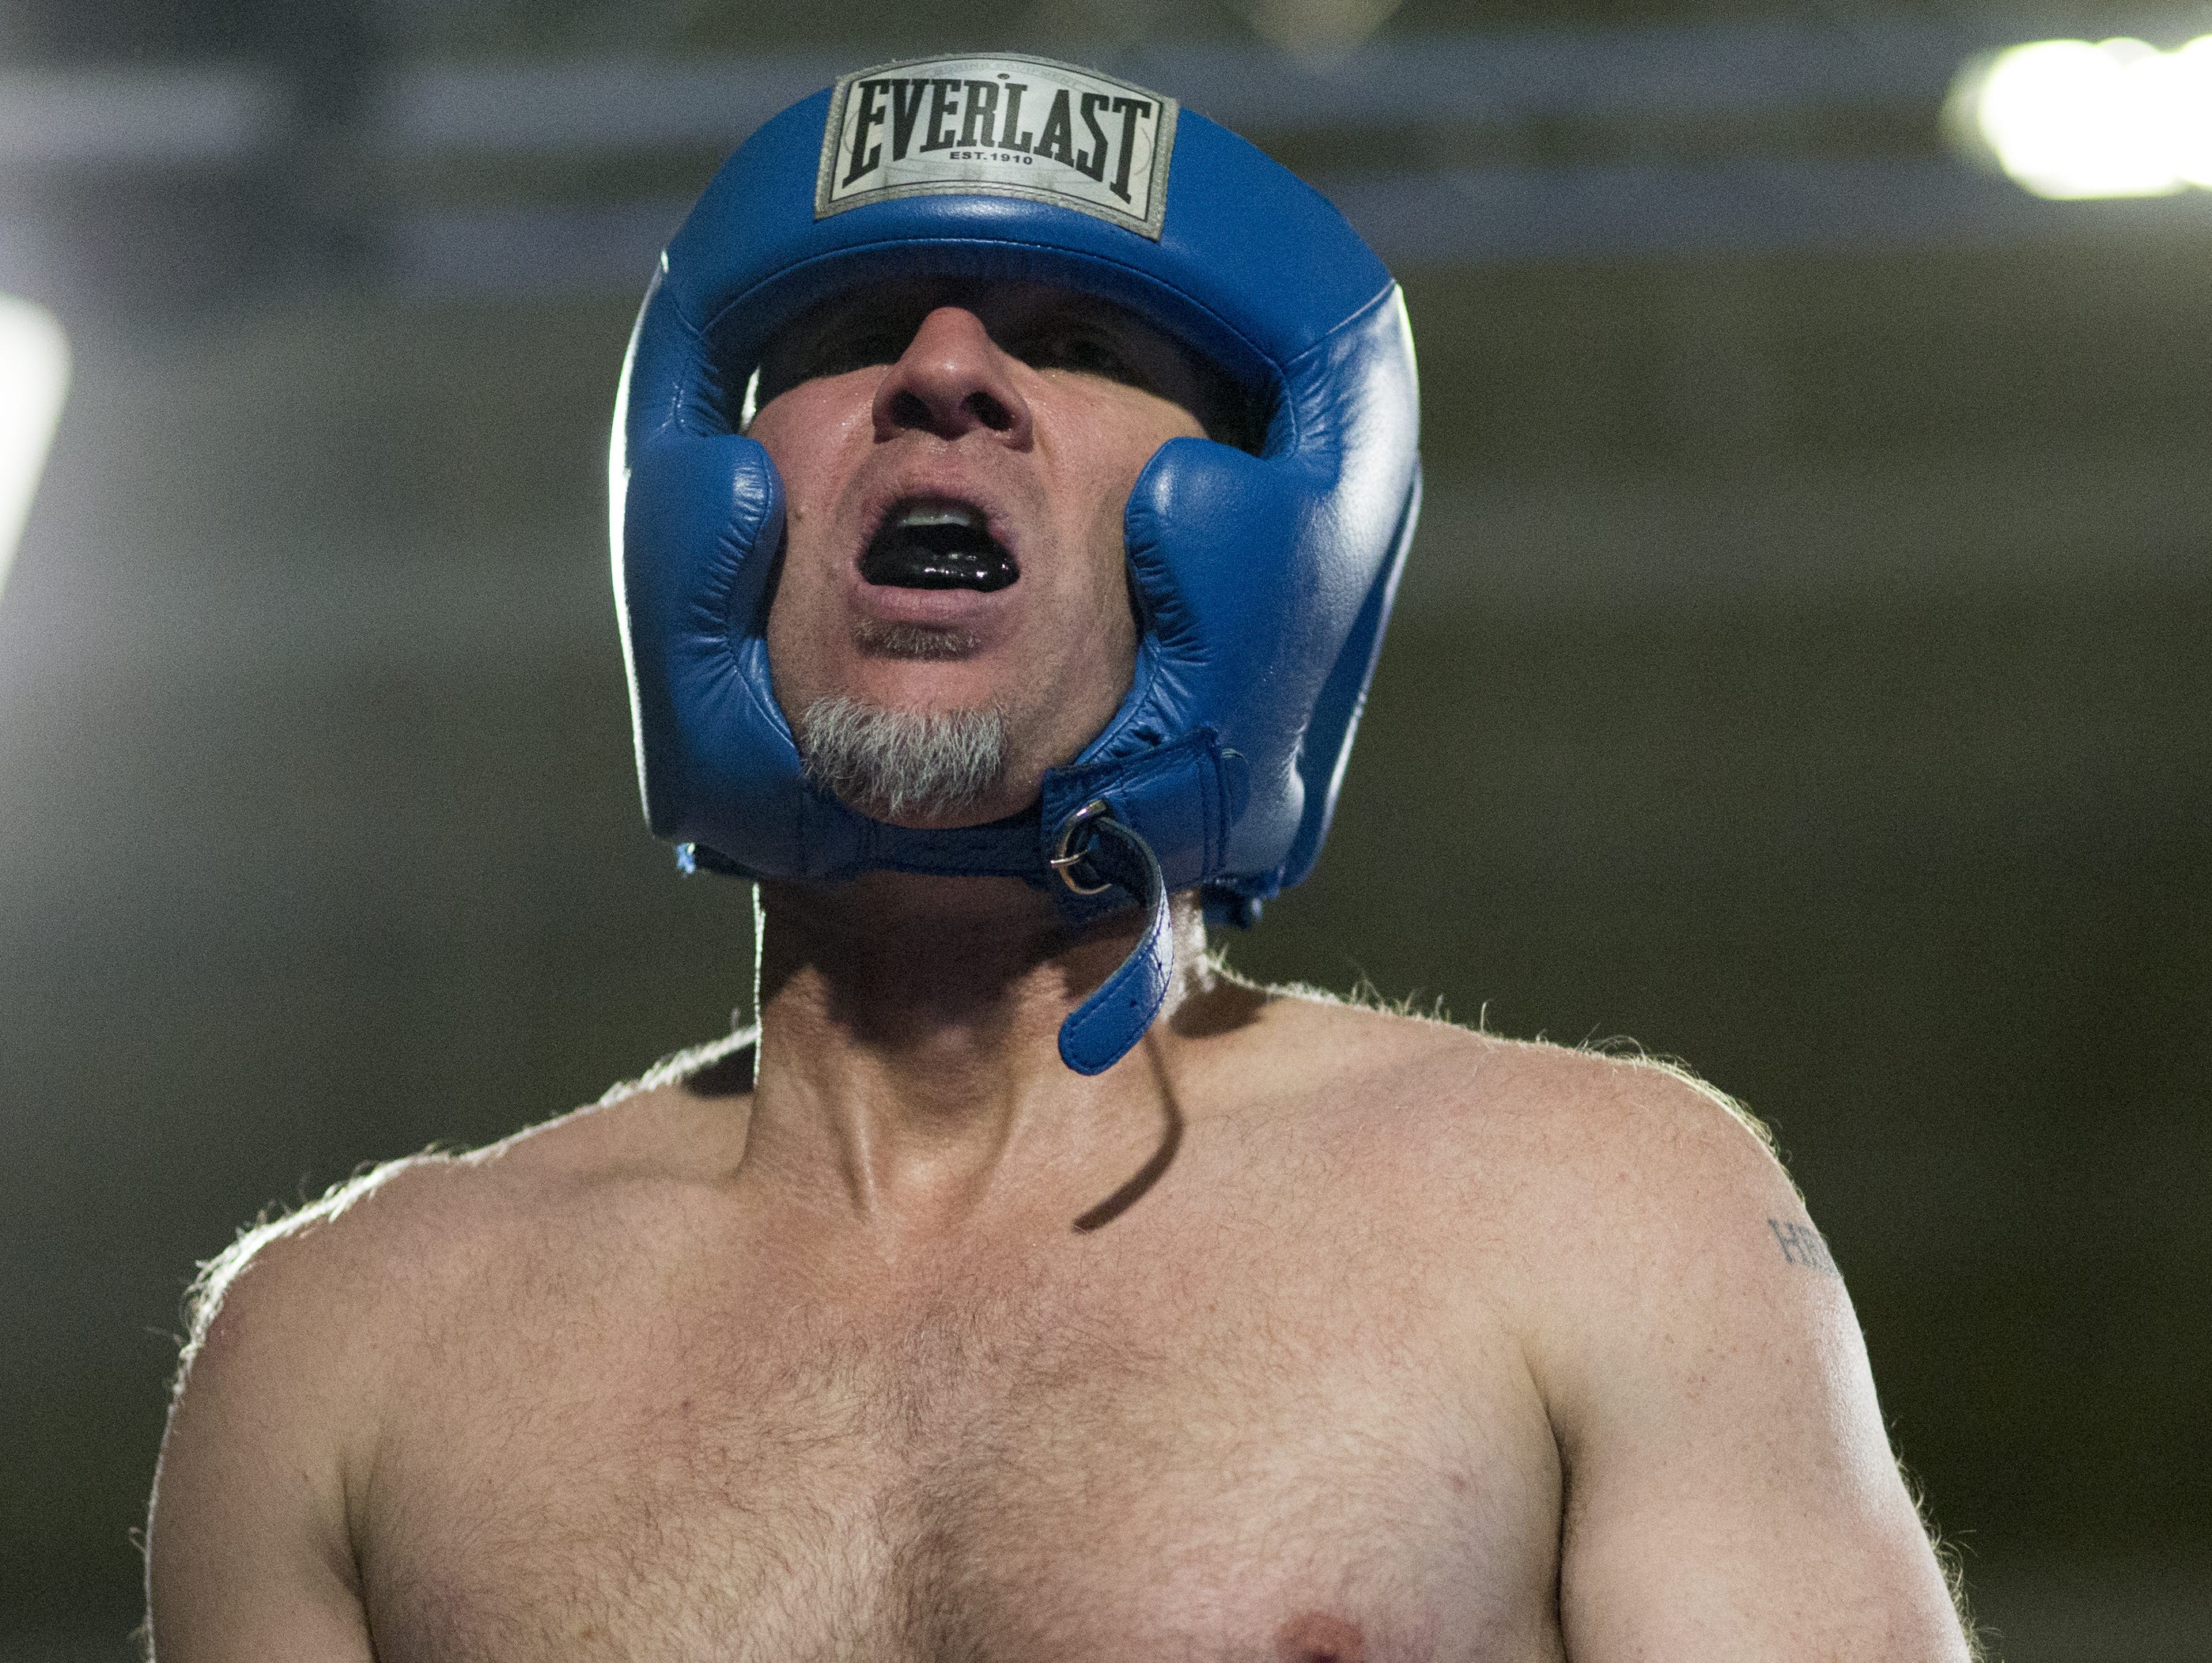 IndyStar columnist Gregg Doyel on Aug. 7, 2015, caught his breath in between rounds as he boxed former UFC fighter Chris Lytle during a charity event for Rock Steady Boxing, Indianapolis.